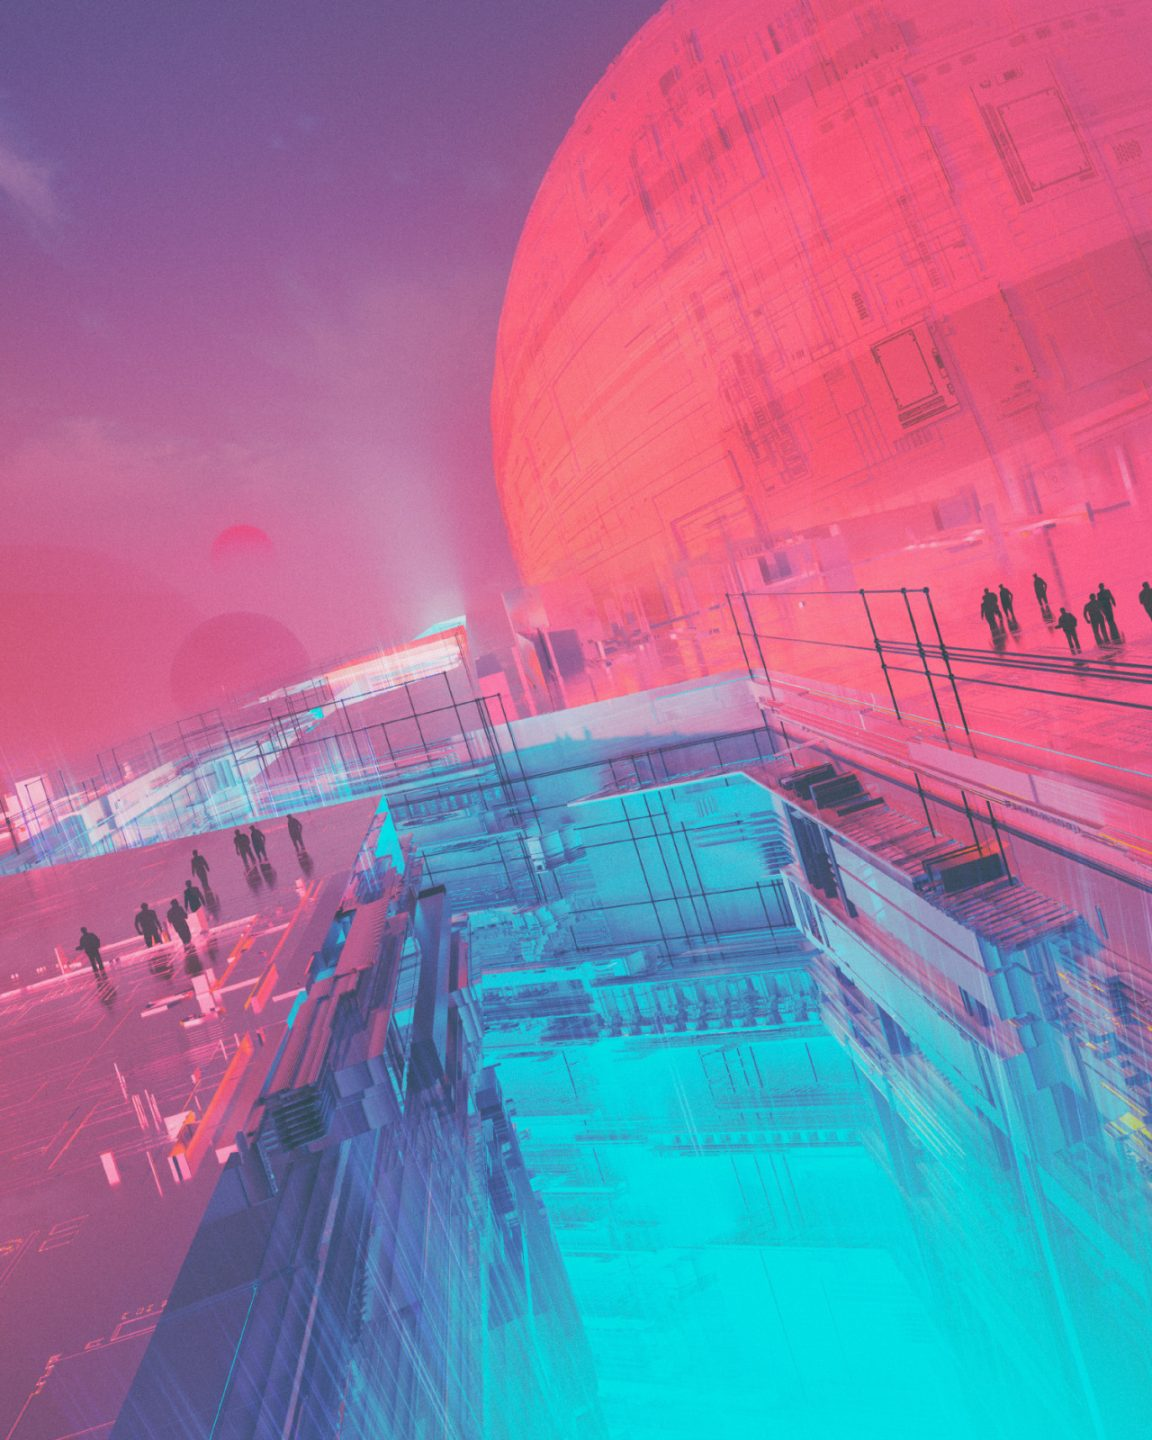 Artist of the Day: Mike Winkelmann